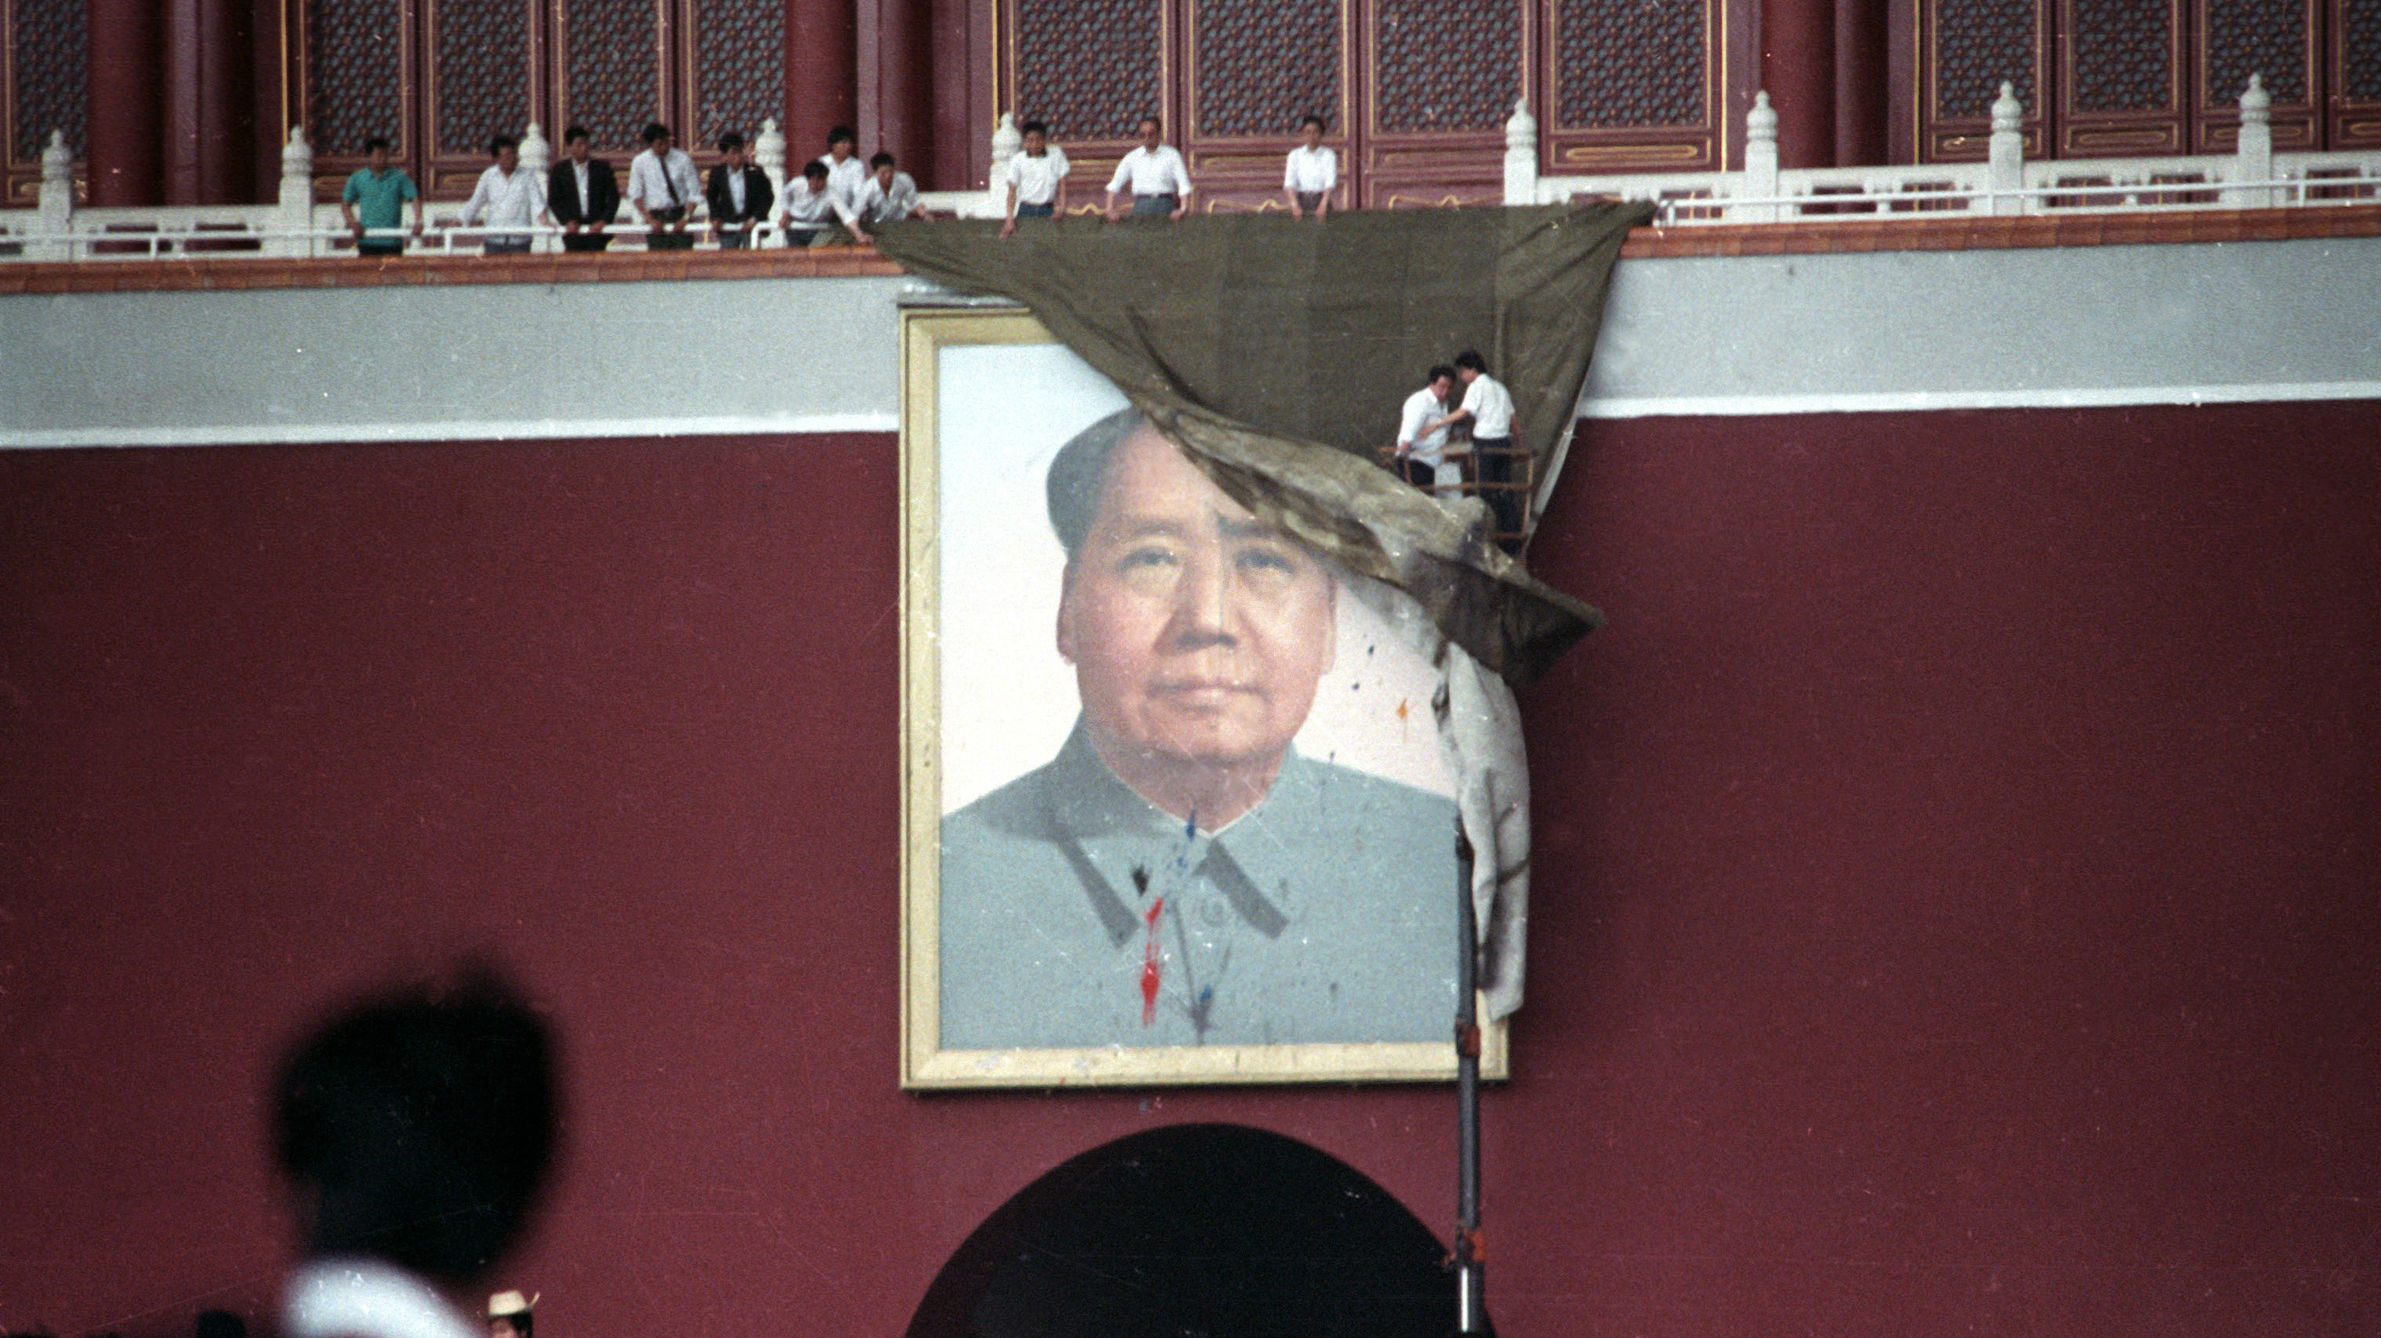 Workmen try to drape the portrait of Mao Tse-tung in Beijing's Tiananmen Square after it was pelted with paint in this May 23, 1989.